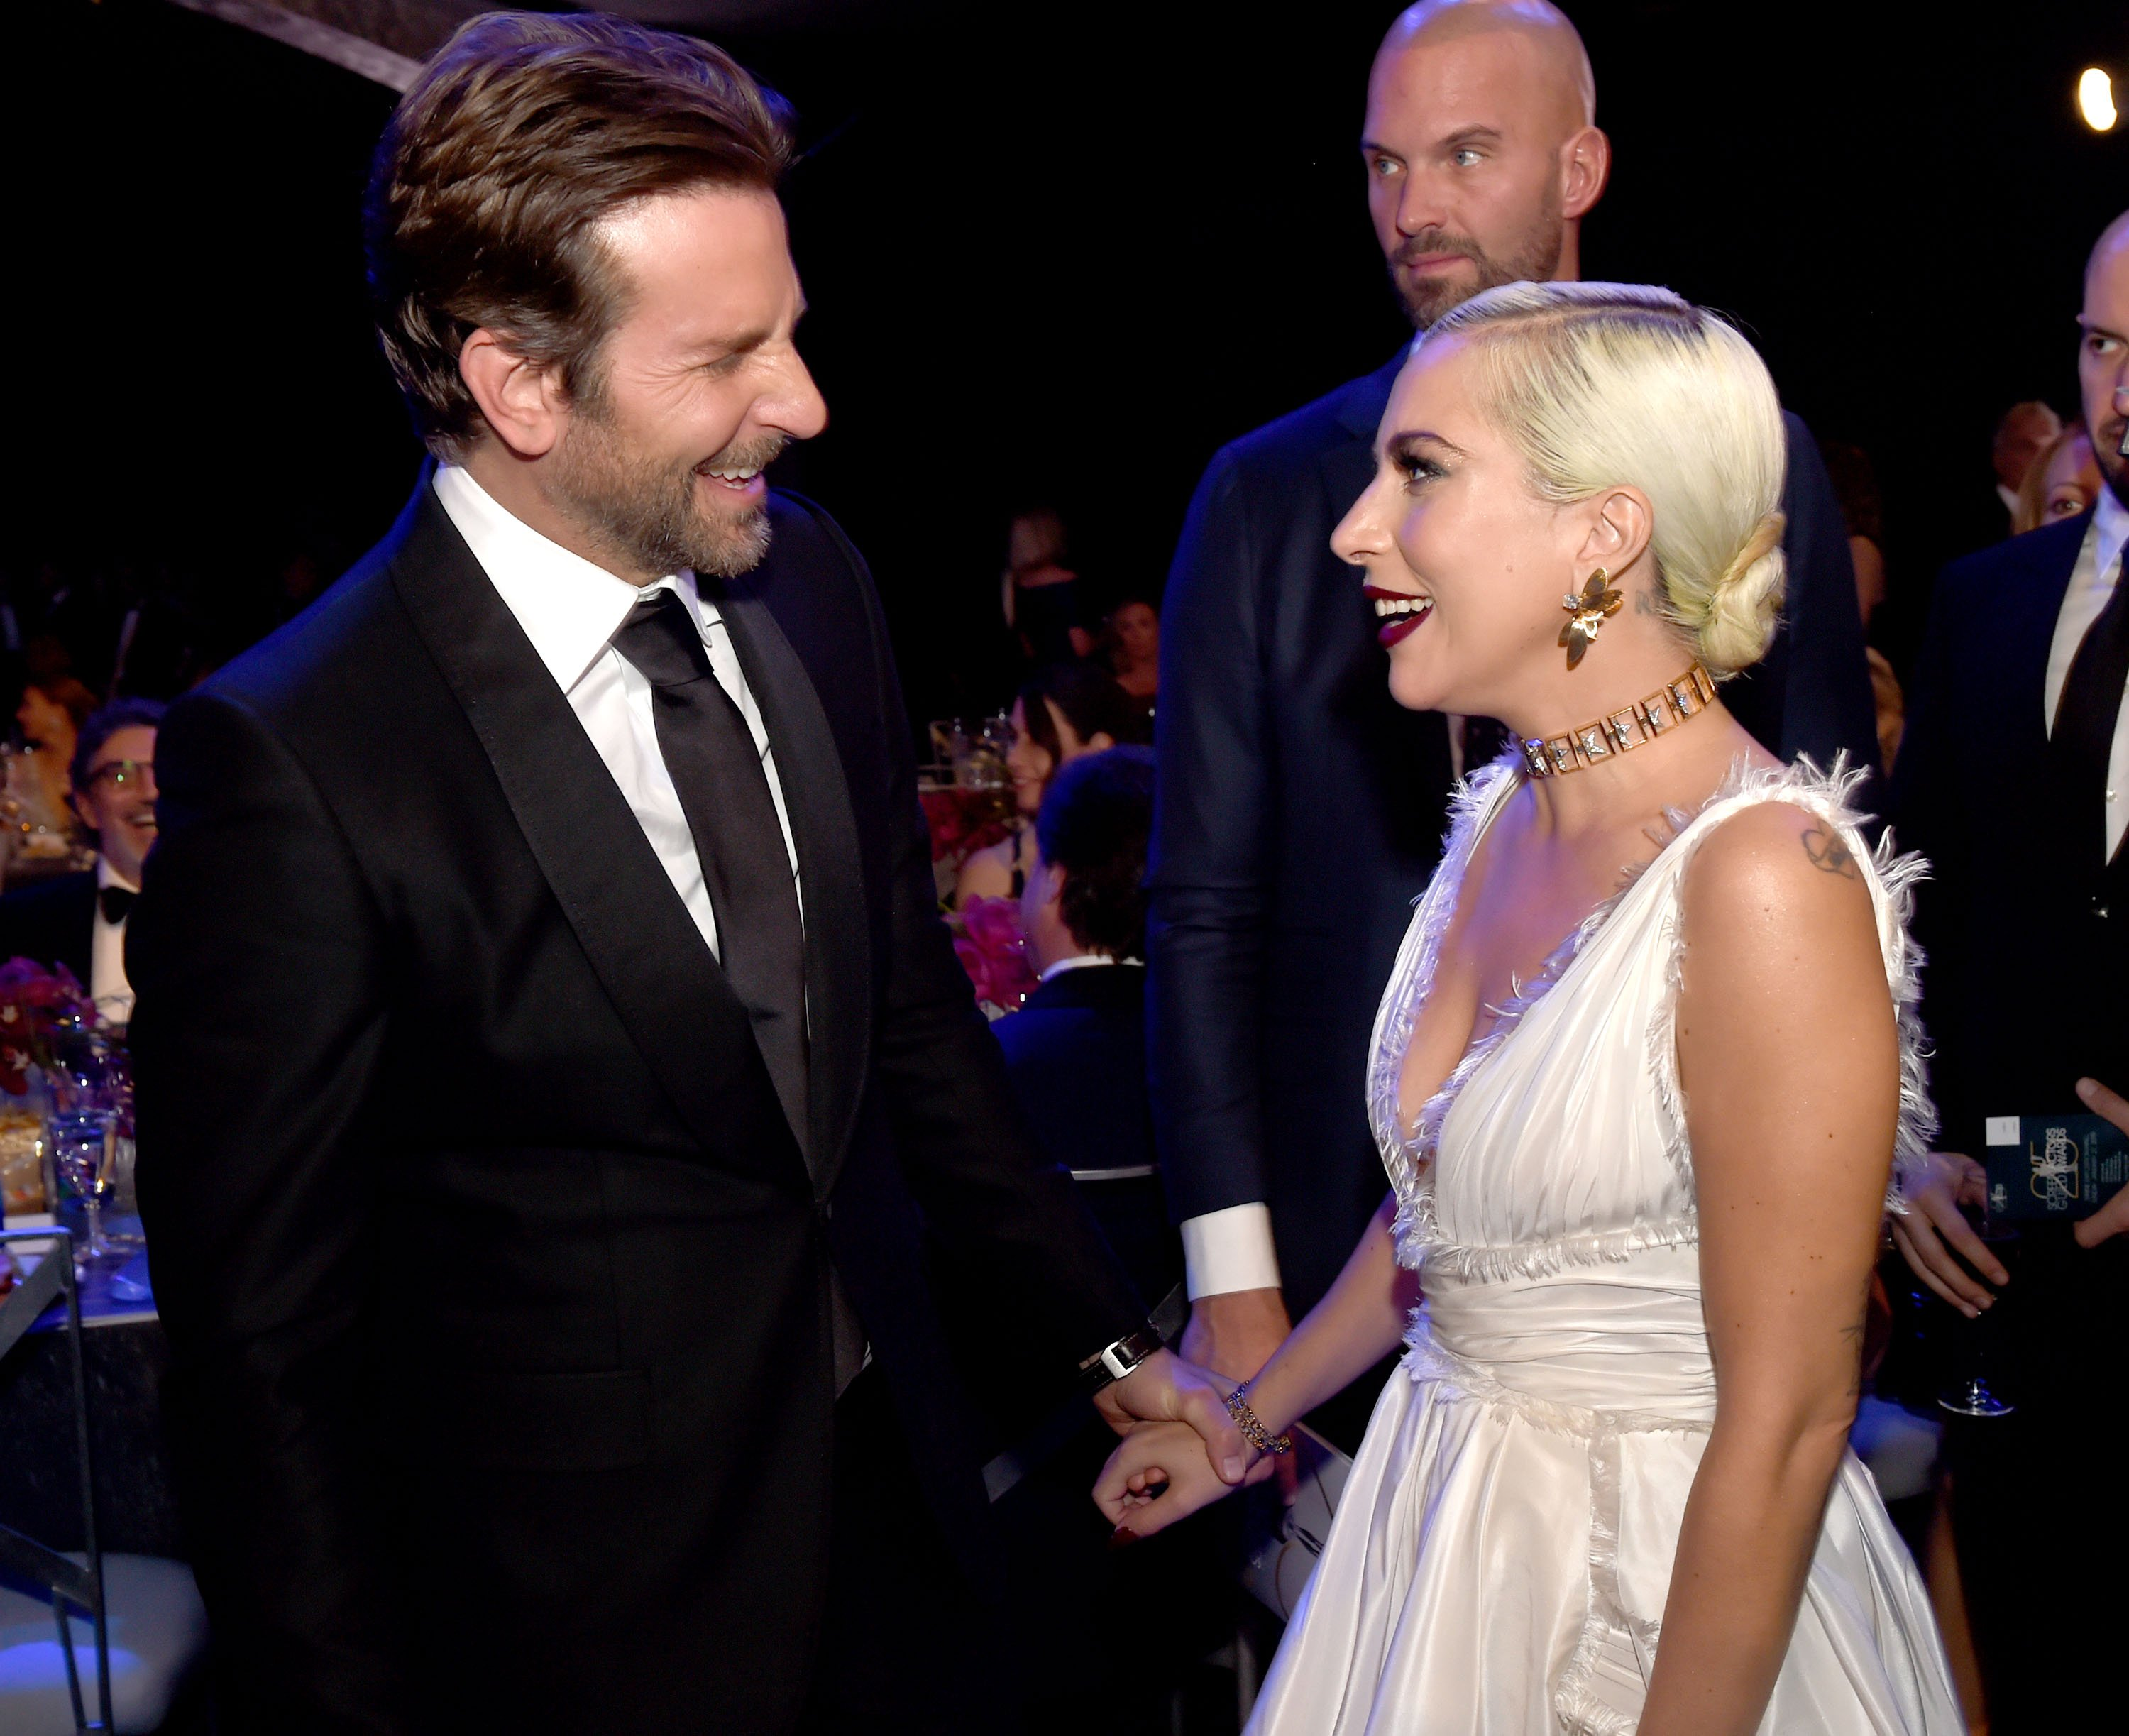 Lady Gaga and Bradley Cooper on January 27, 2019 in Los Angeles, California | Photo: Getty Images